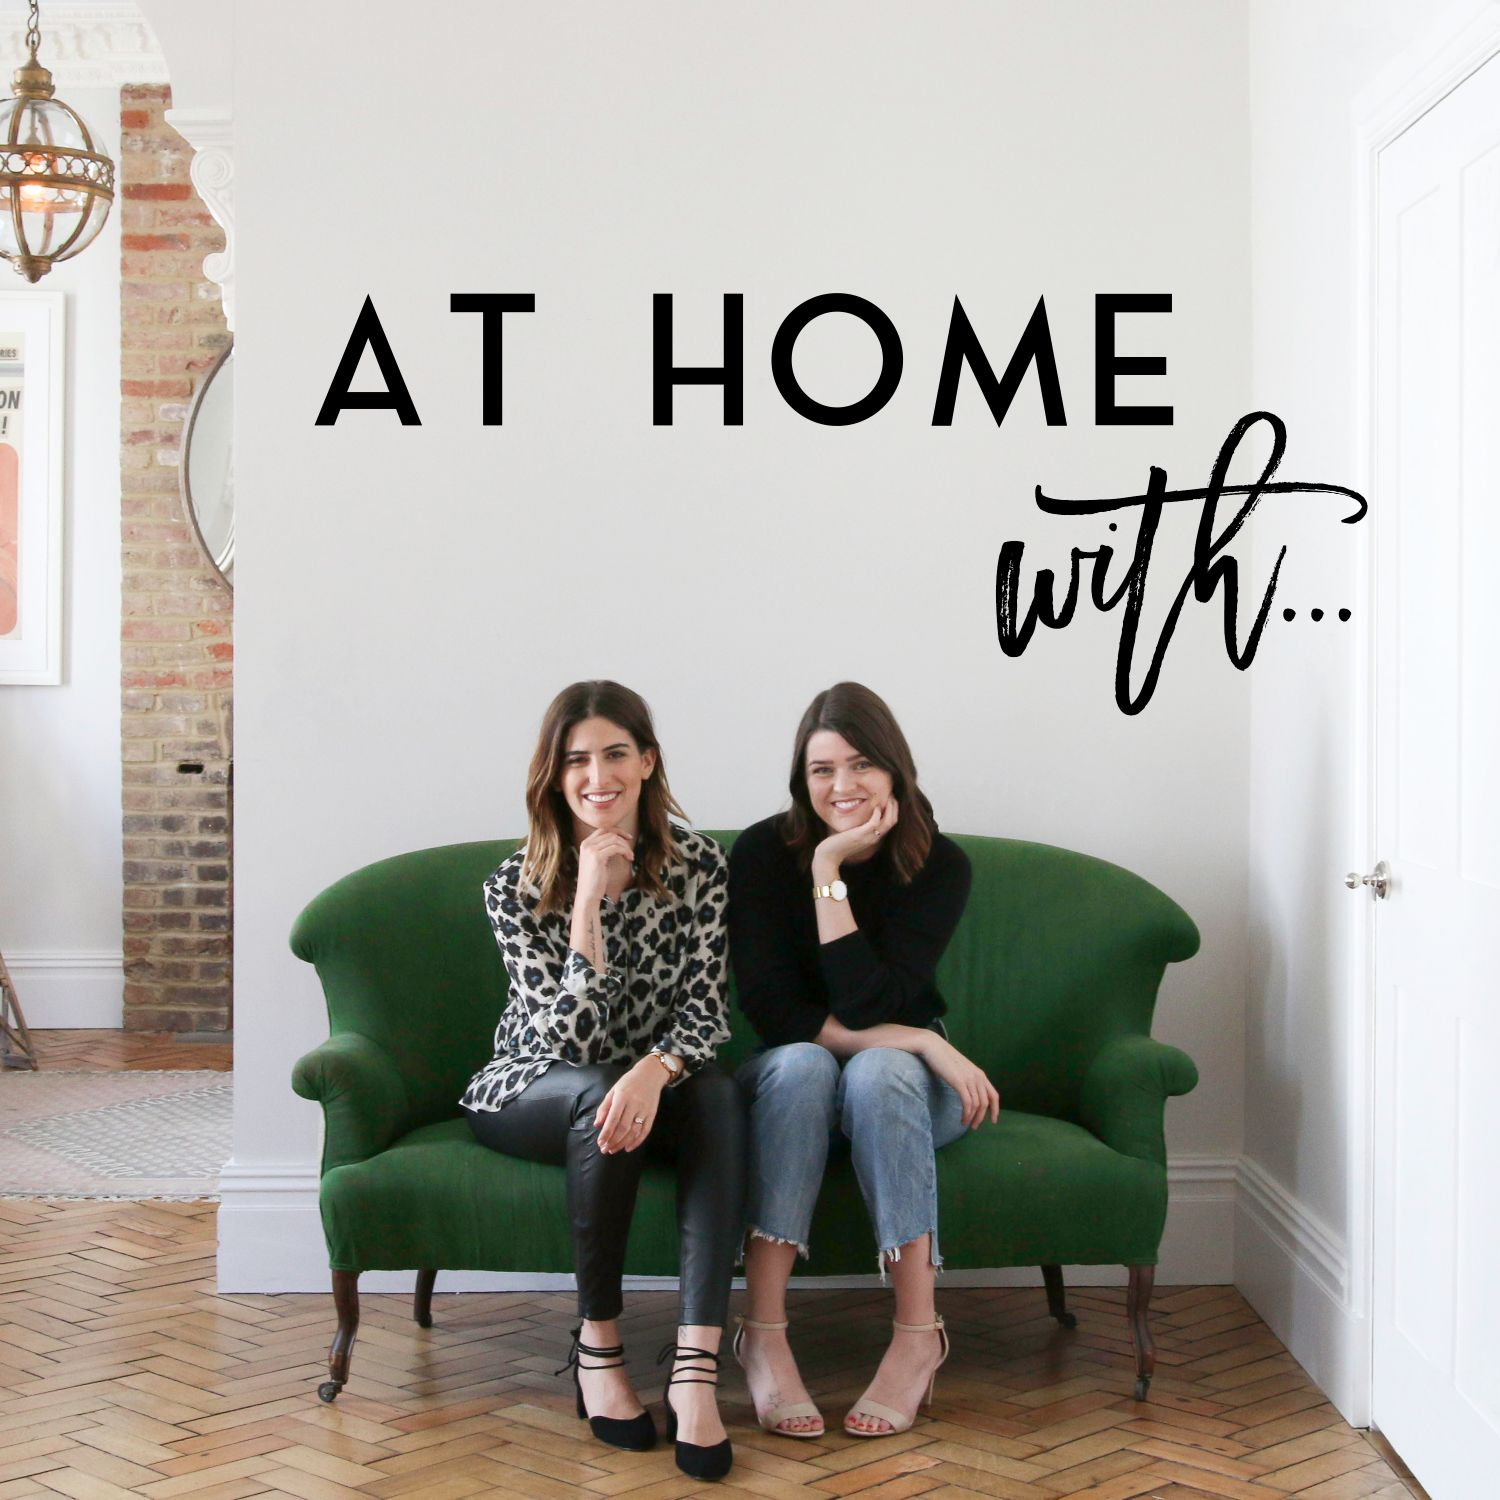 At Home With... on acast